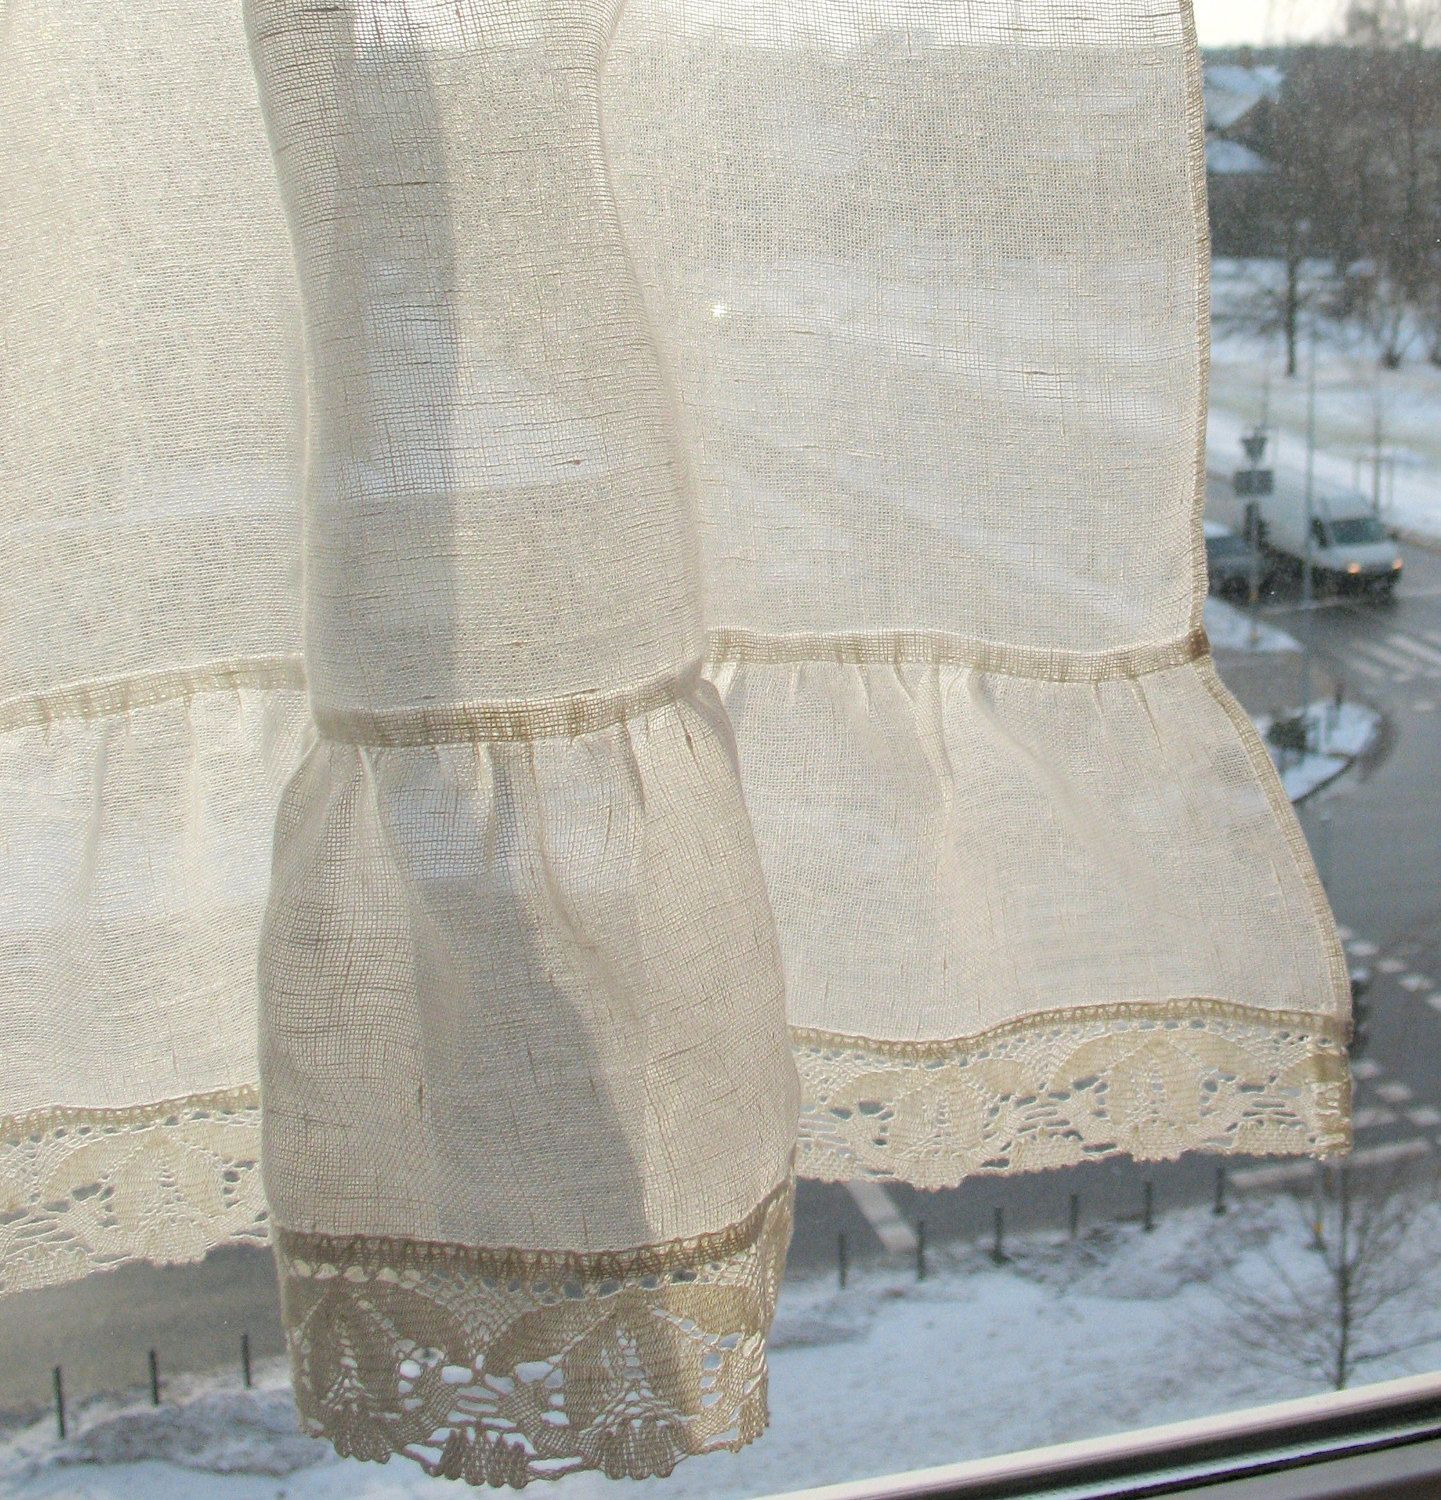 Ruffled curtains lace curtains cafe curtains linen curtains kitchen